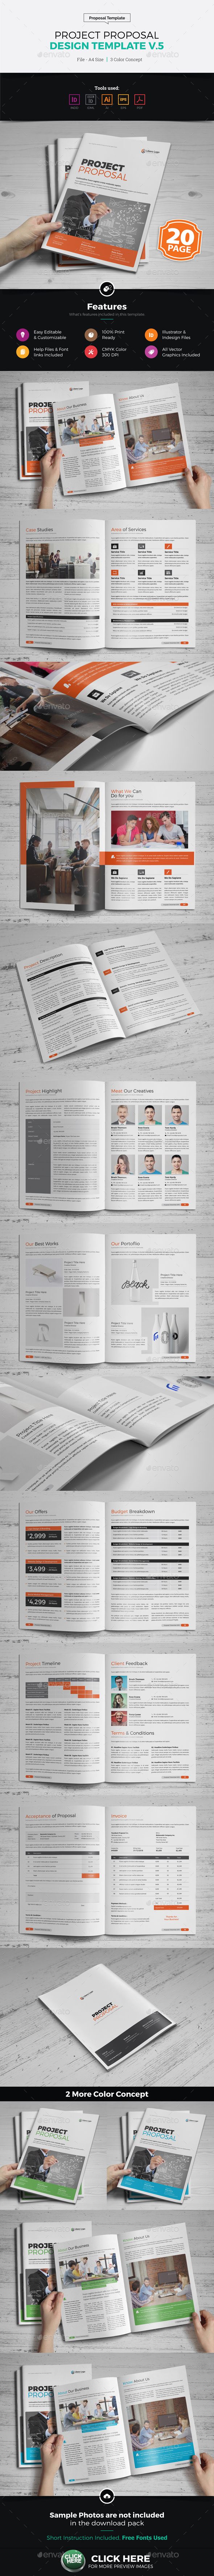 Project Proposal Design v5 - Proposals & Invoices Stationery